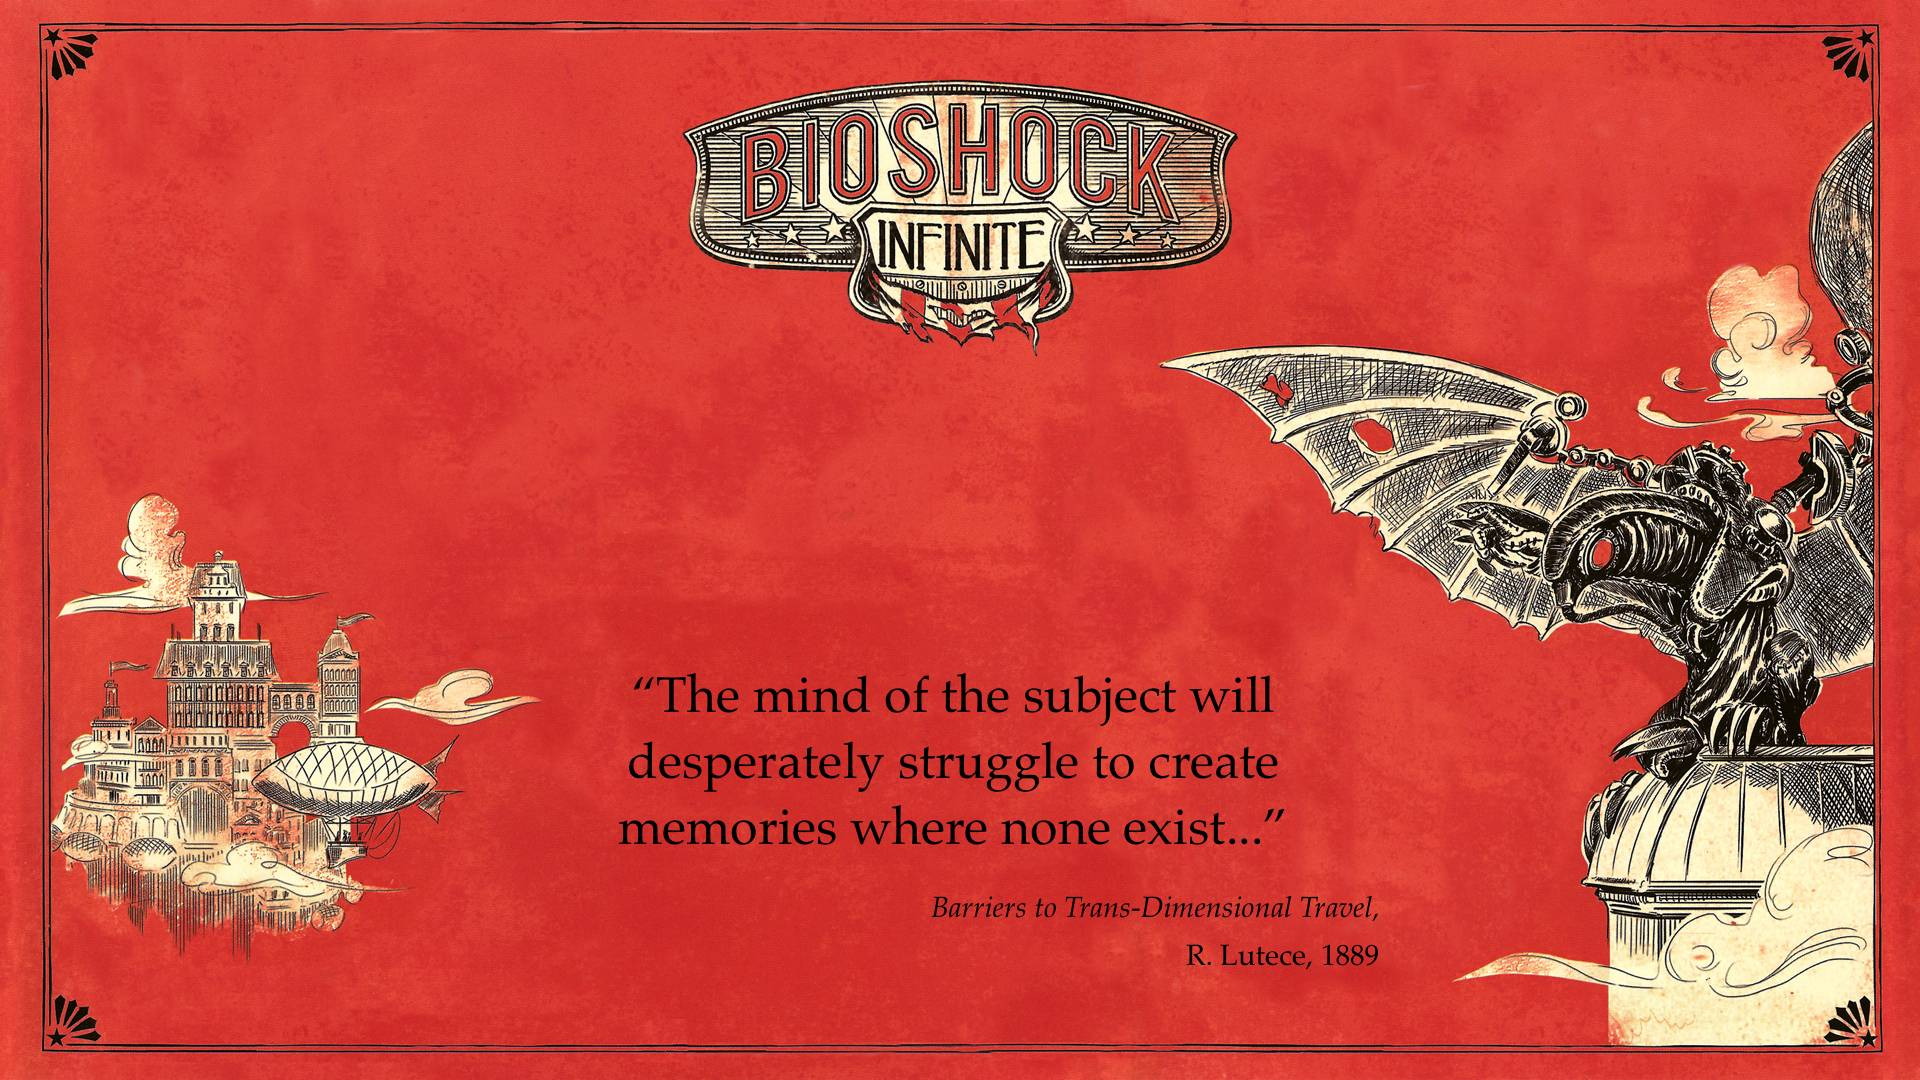 Videogame Wallpapers With Quotes Bioshock Infinite Wallpapers 1920x1080 Wallpaper Cave